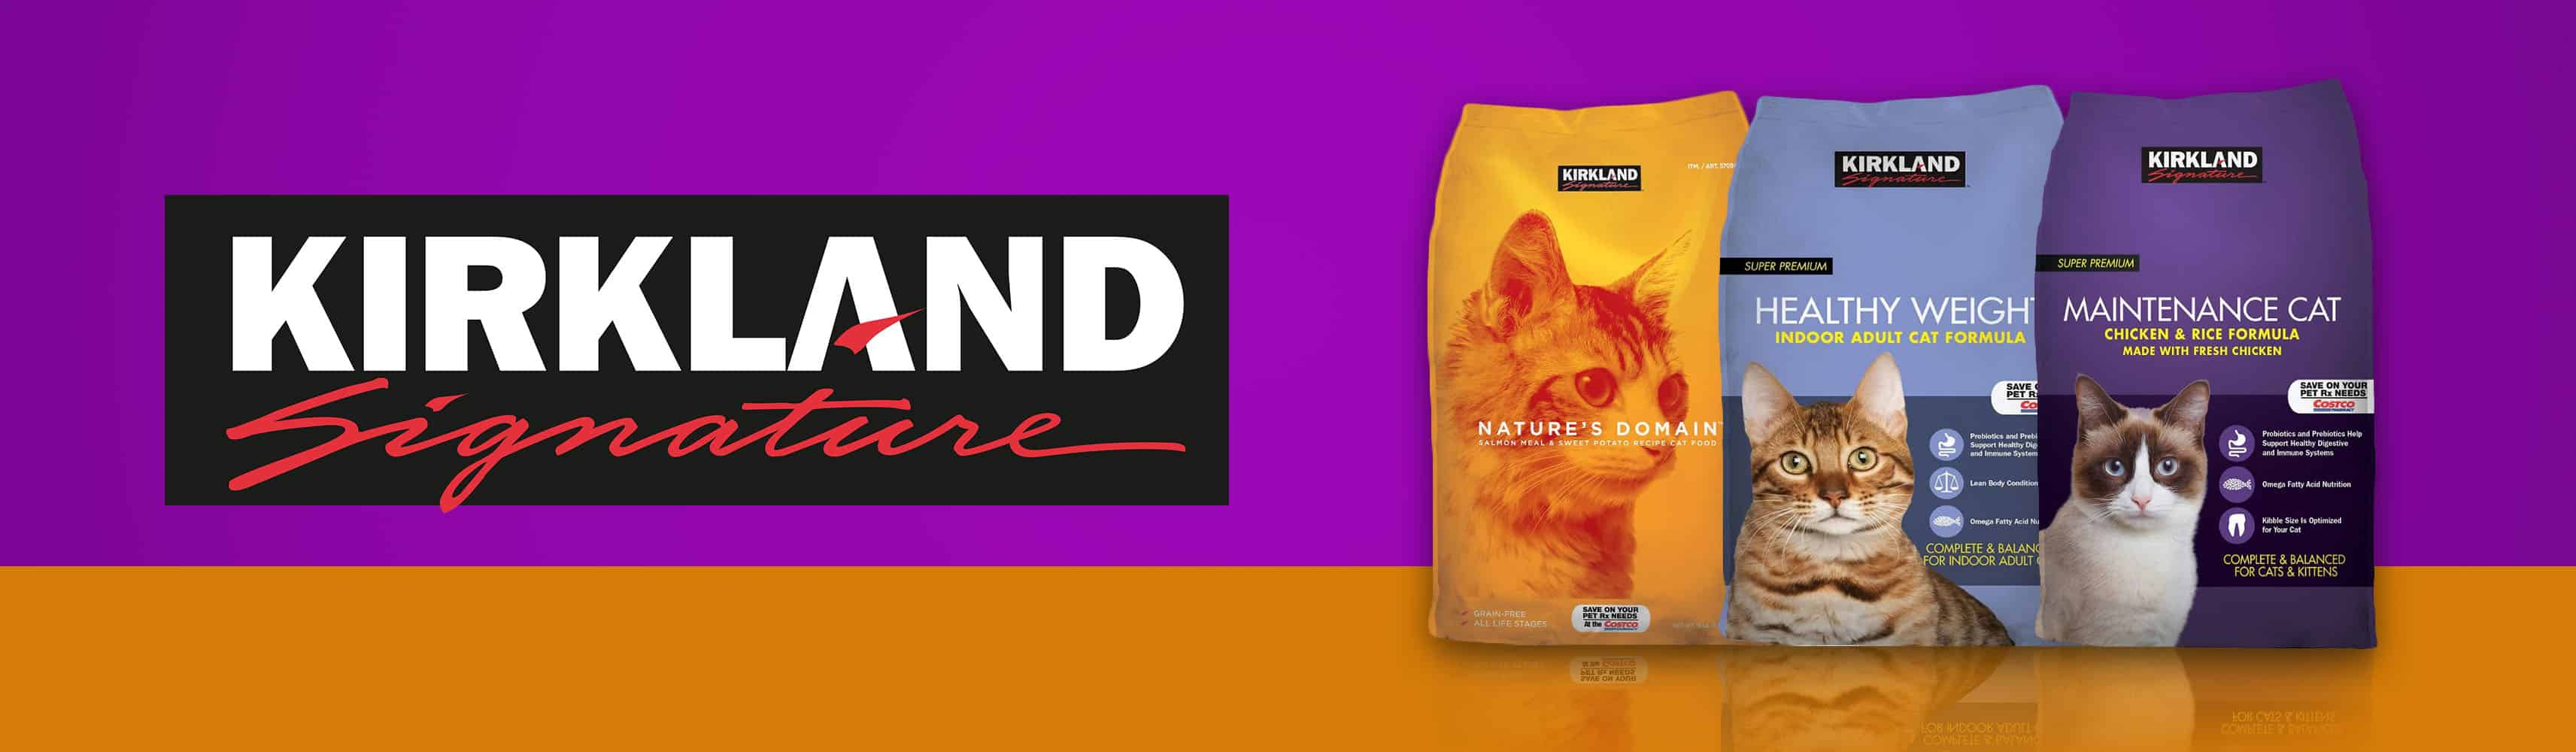 2021 Kirkland Cat Food Review: Premium Quality, Affordable Cat Food 1